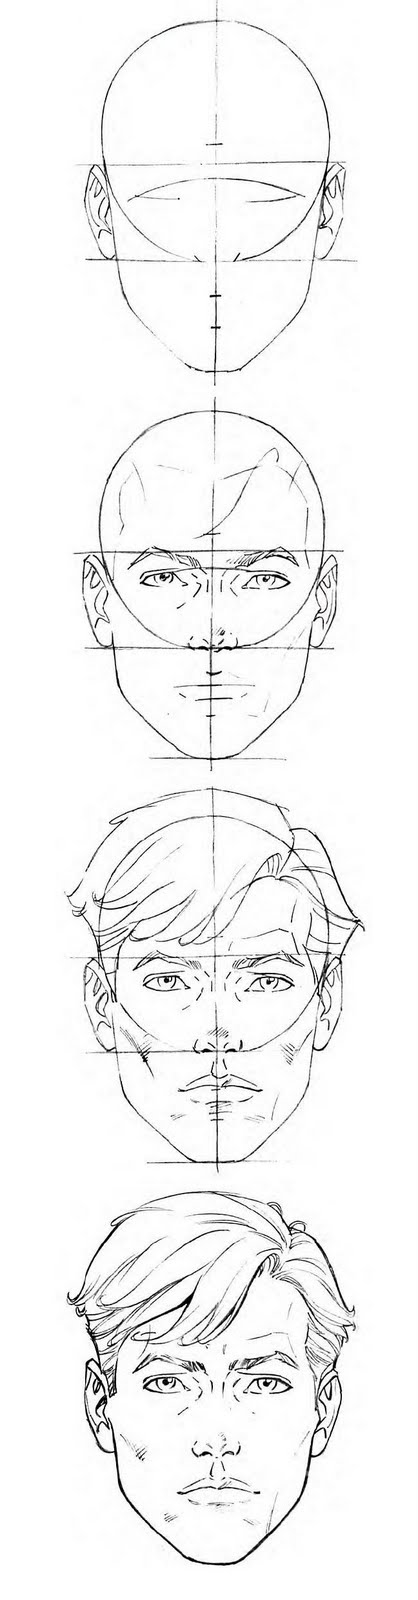 Female Head proportions template\/reference \/\/ follow me on - reference sheet examples